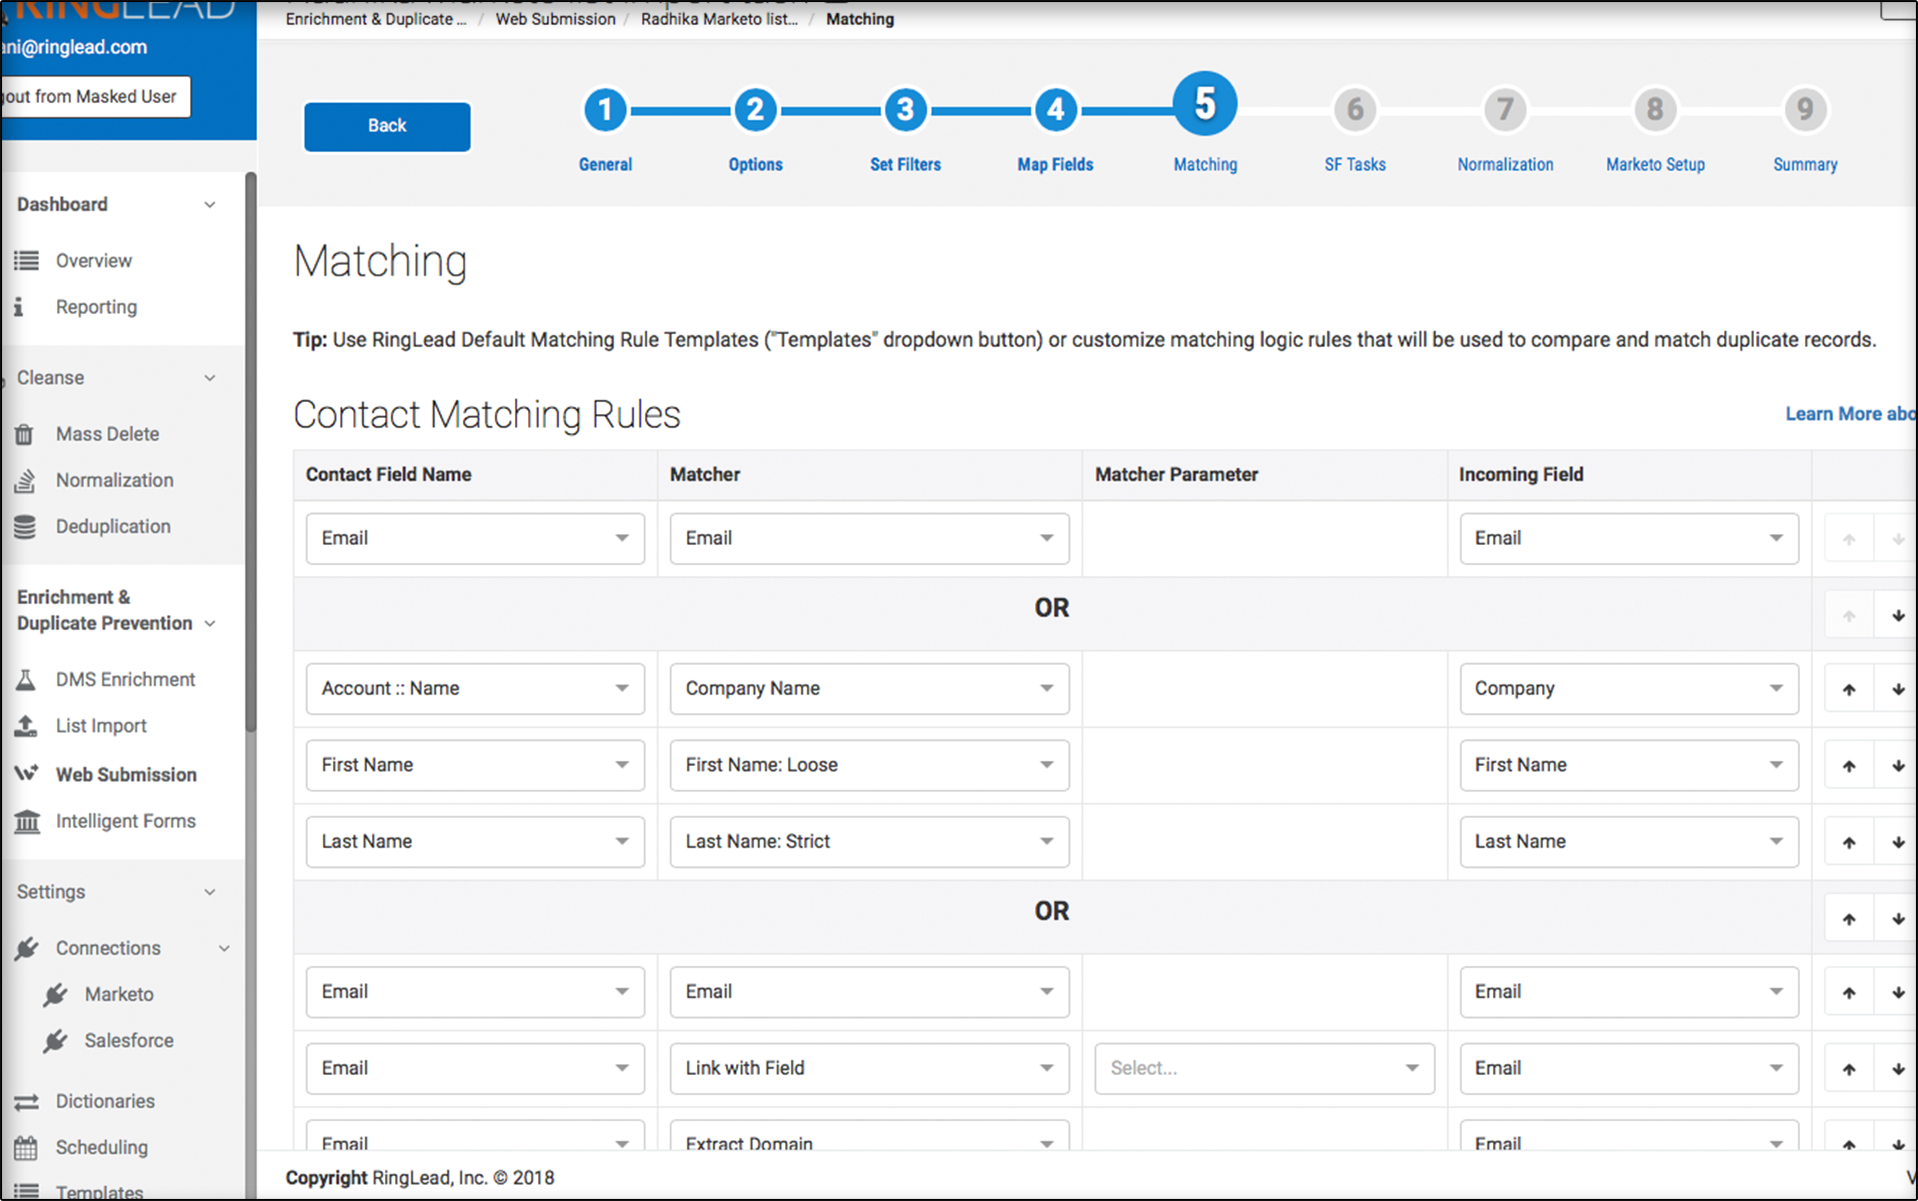 Defend against dirty data with Duplicate Prevention - RingLead